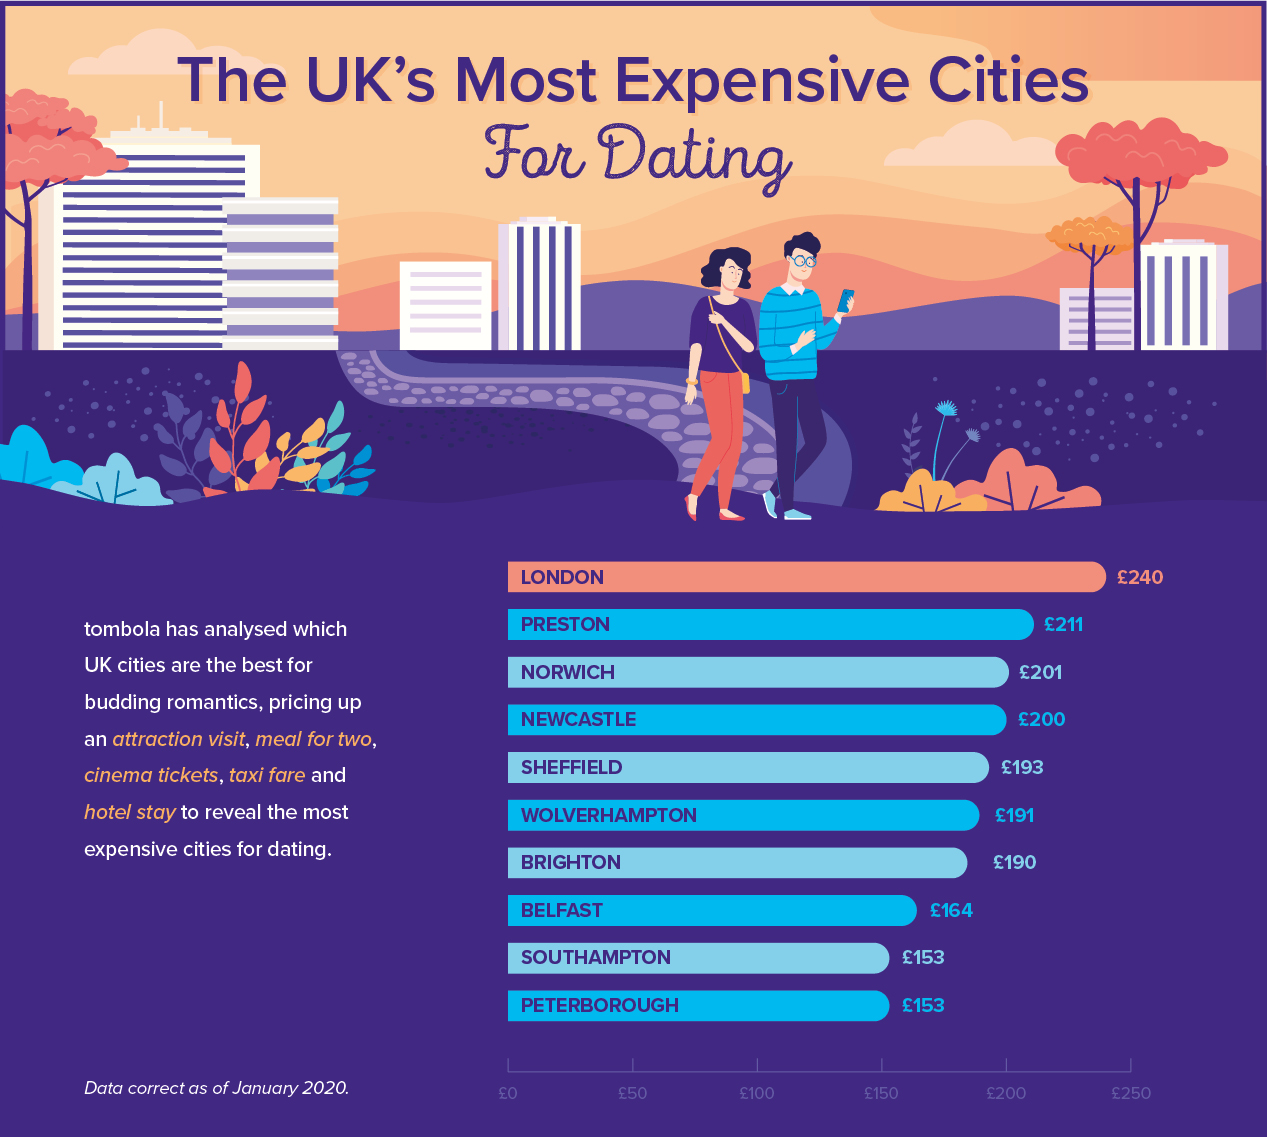 The UK's Most Expensive Cities for Dating